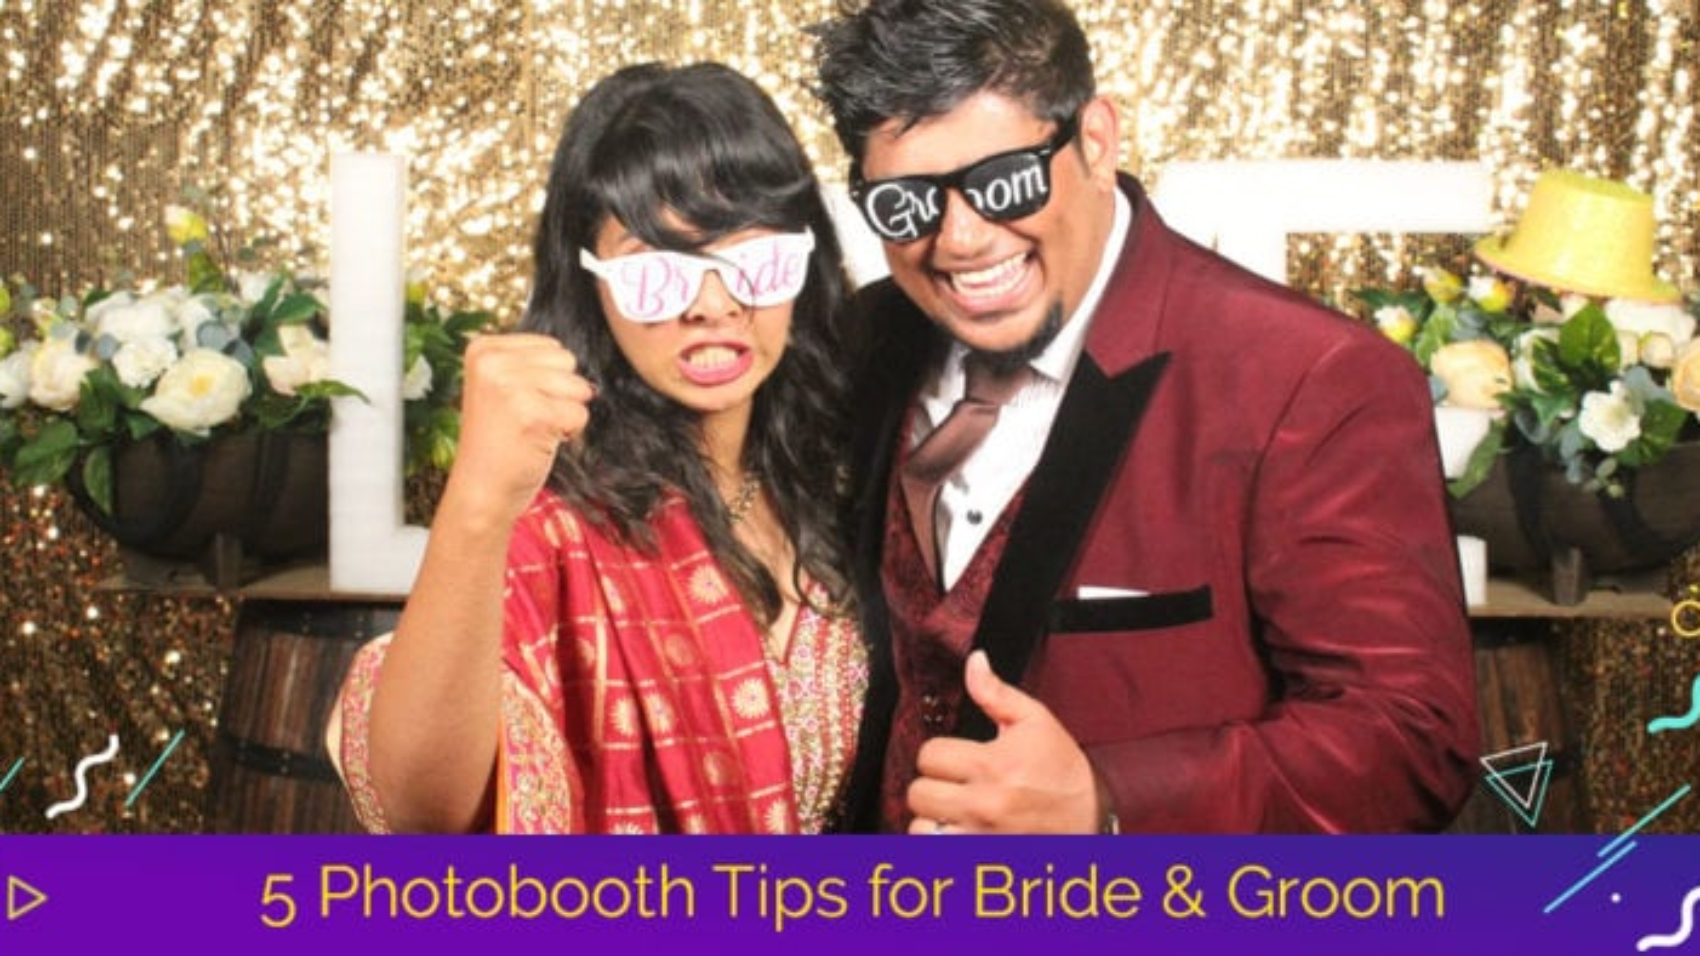 5 photobooth tips for bride & groom